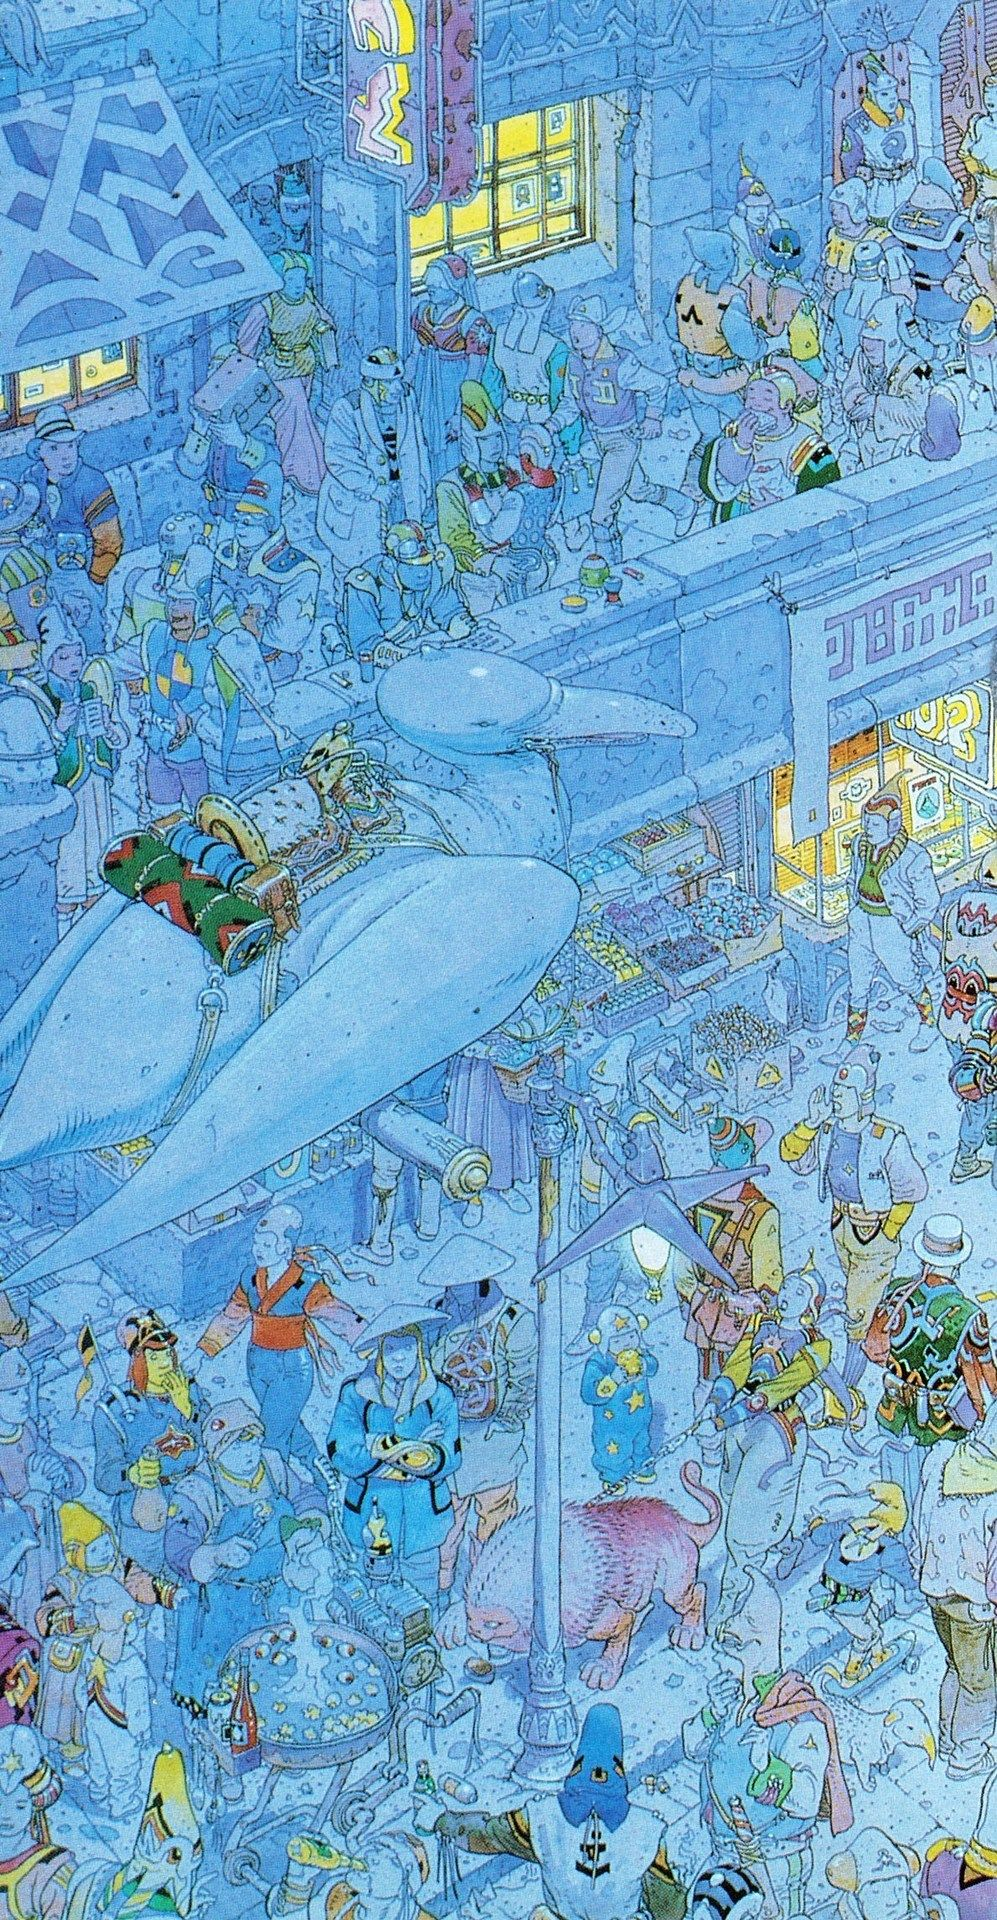 Moebius: one of my favorite artists